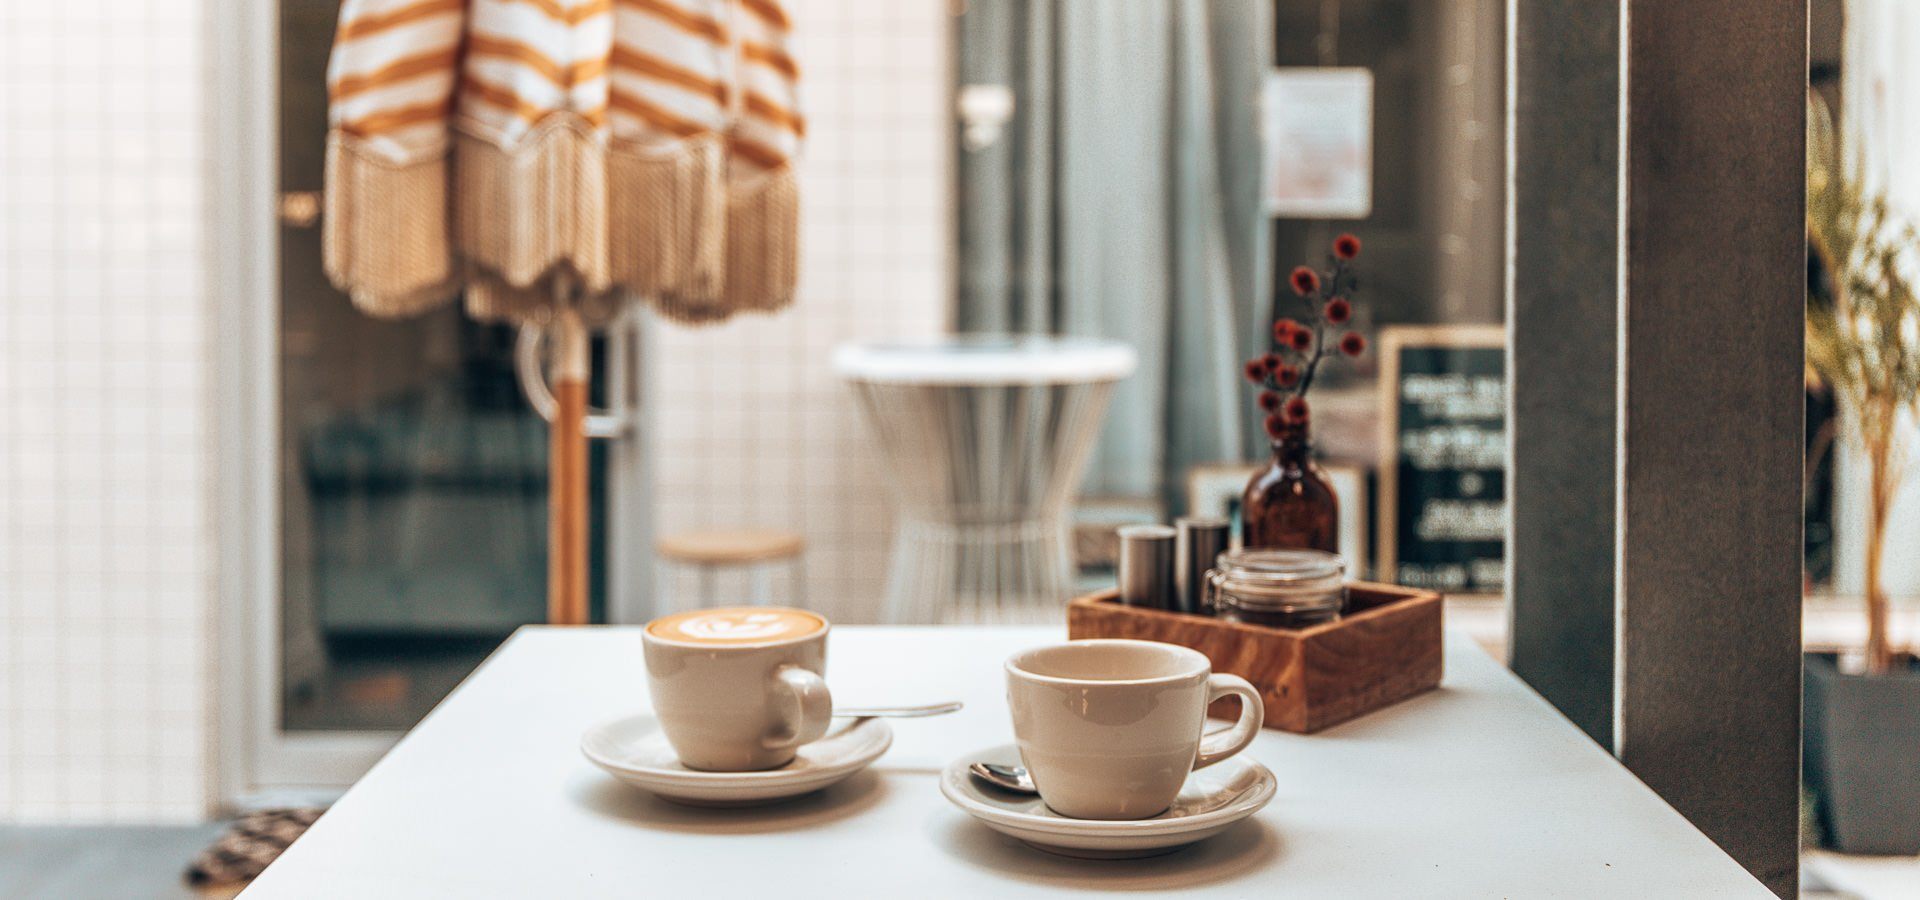 15 Cafes For The Best Specialty Coffee in Brisbane | specialty coffee brisbane 24